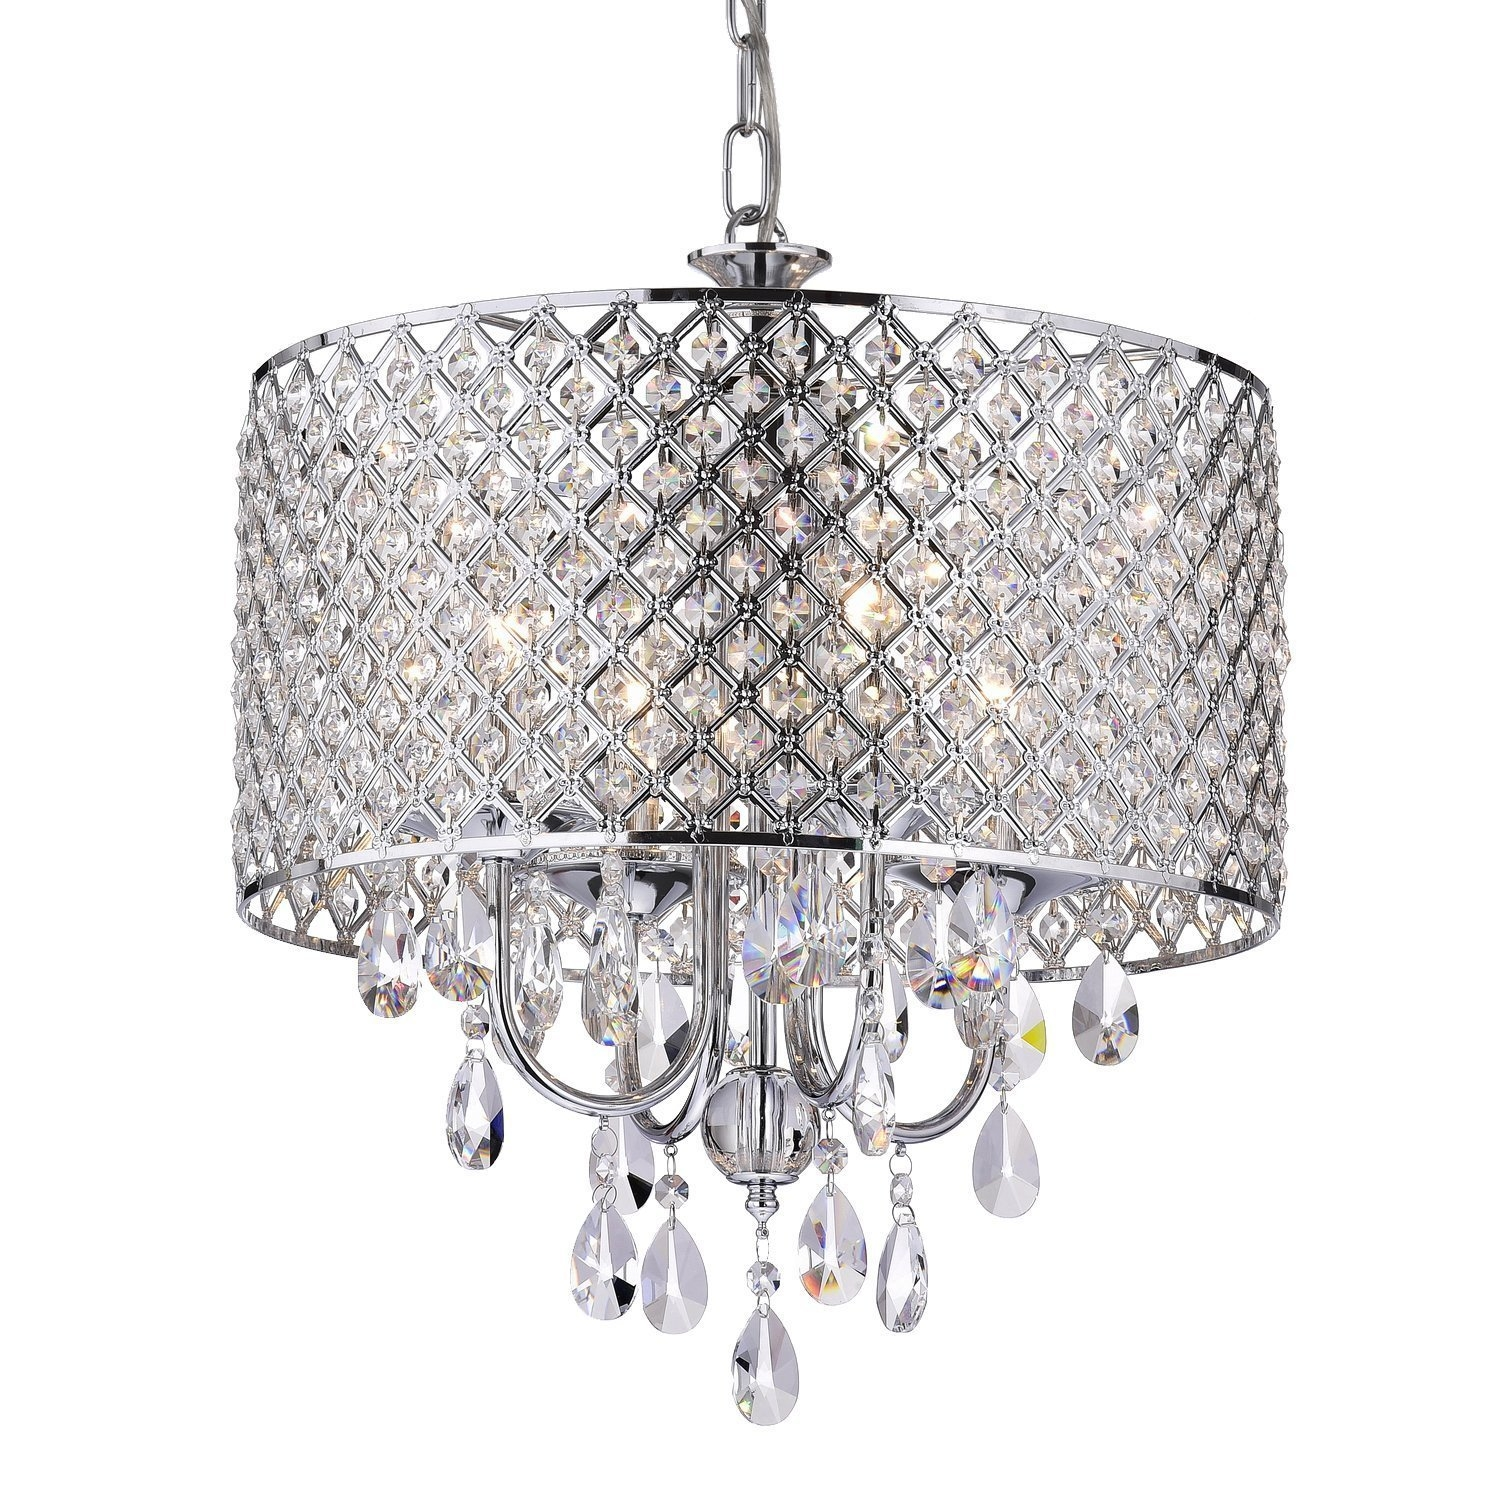 Chandeliers Amazon Lighting Ceiling Fans Ceiling Lights Intended For Small Chandeliers For Low Ceilings (#4 of 12)